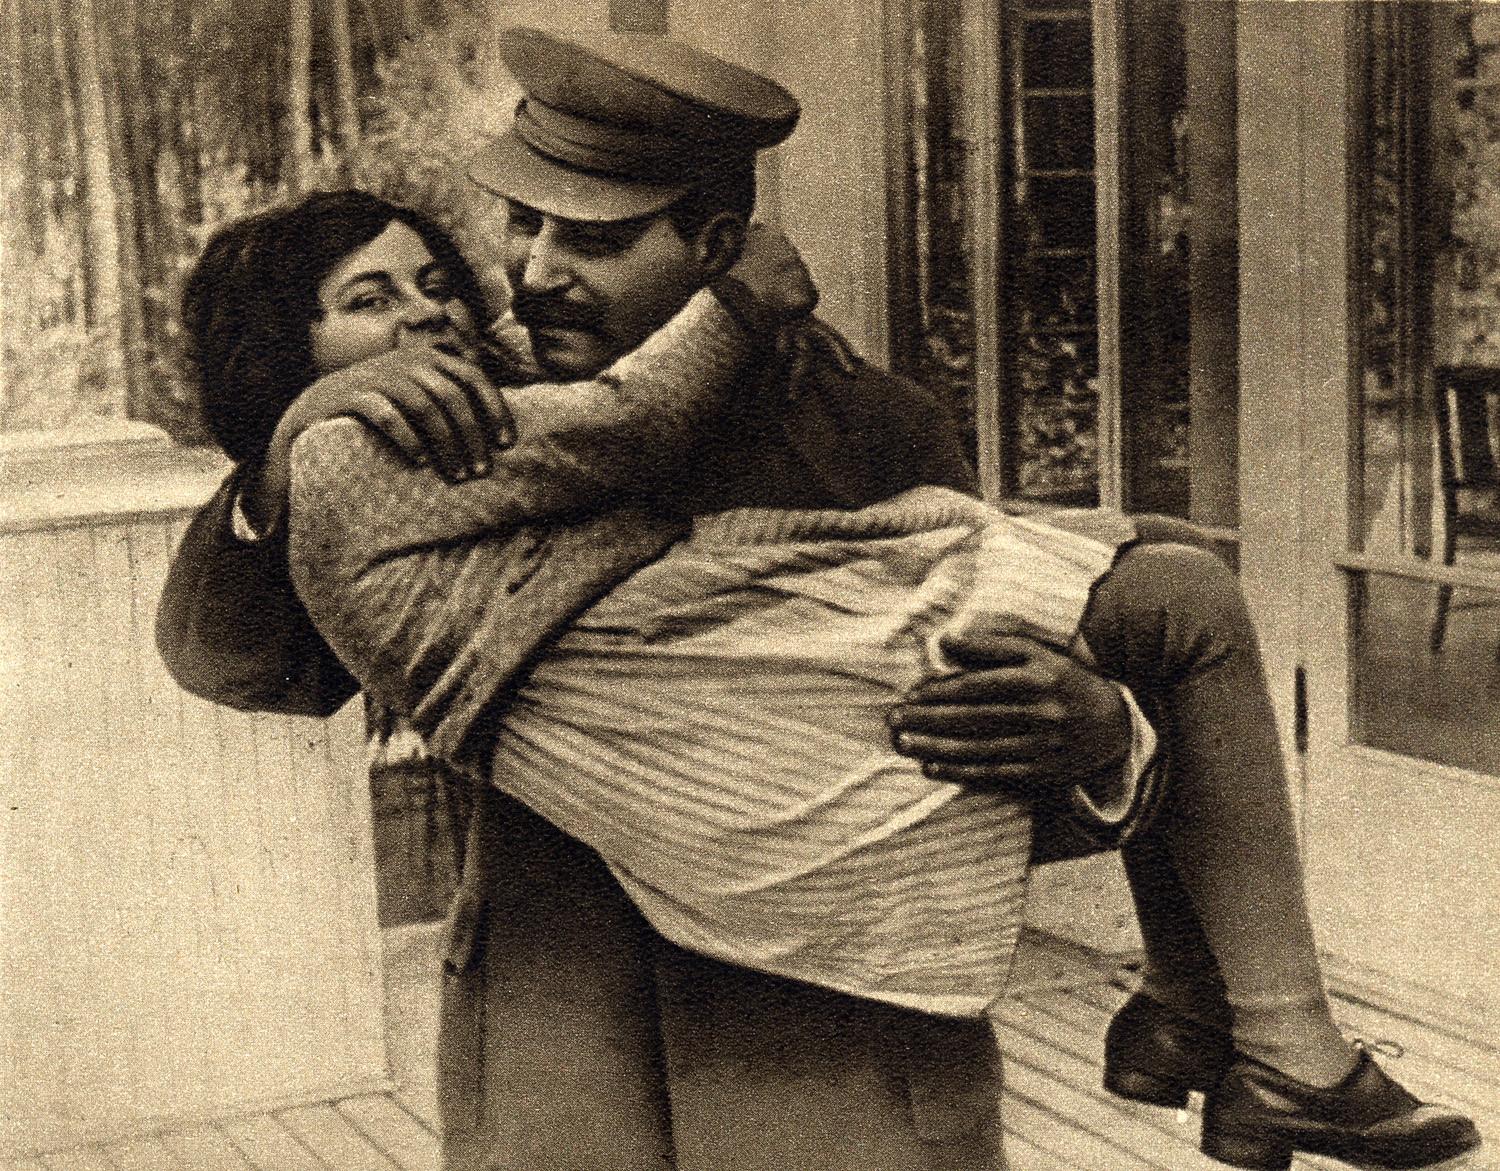 http://upload.wikimedia.org/wikipedia/commons/7/79/Joseph_Stalin_with_daughter_Svetlana%2C_1935.jpg